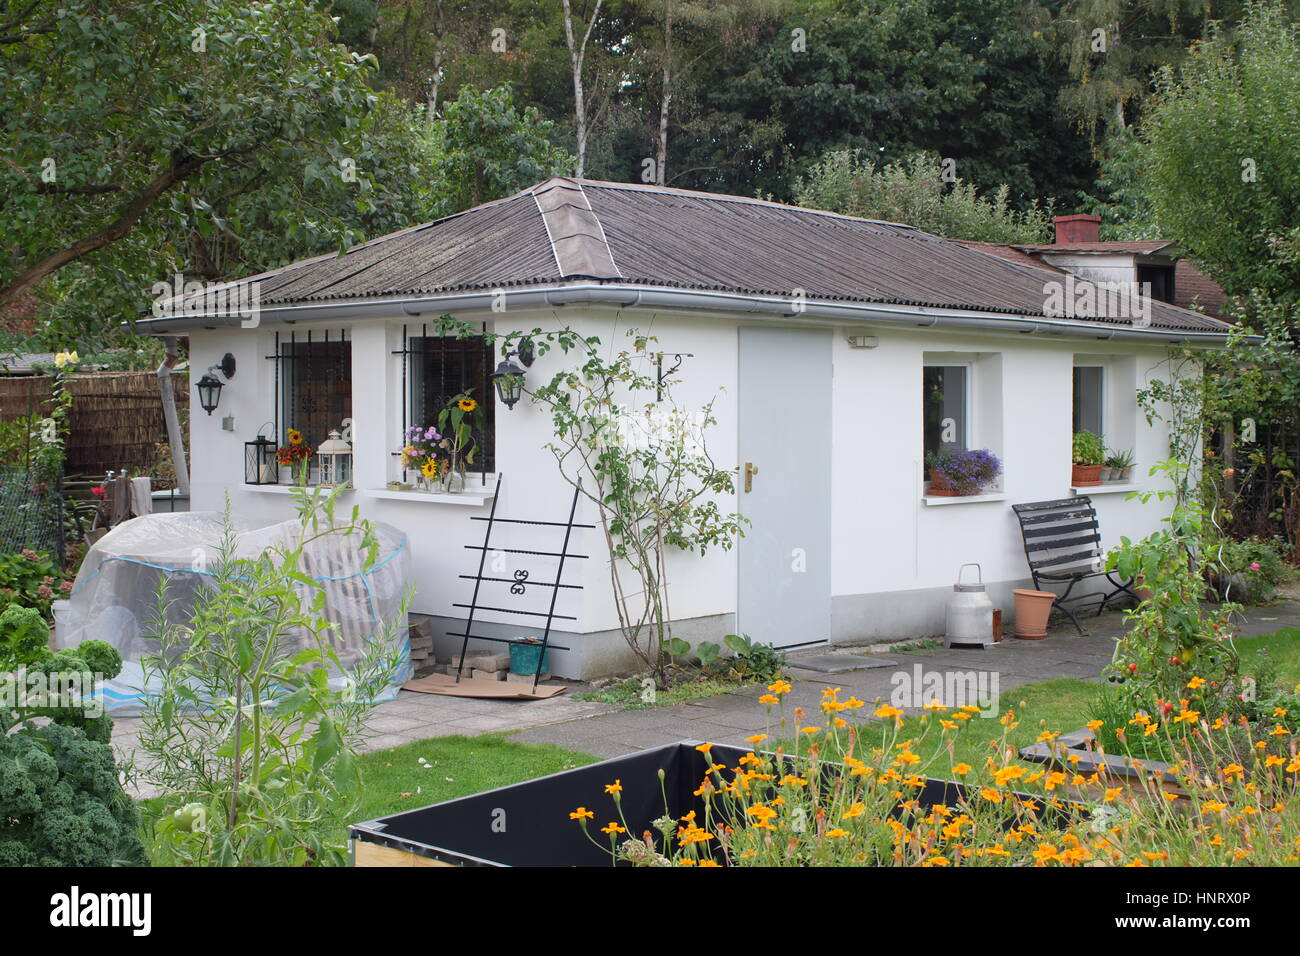 Kleingarten Colonies comprise weekend cottages on small allotments in the city, popular with people whose main home Stock Photo